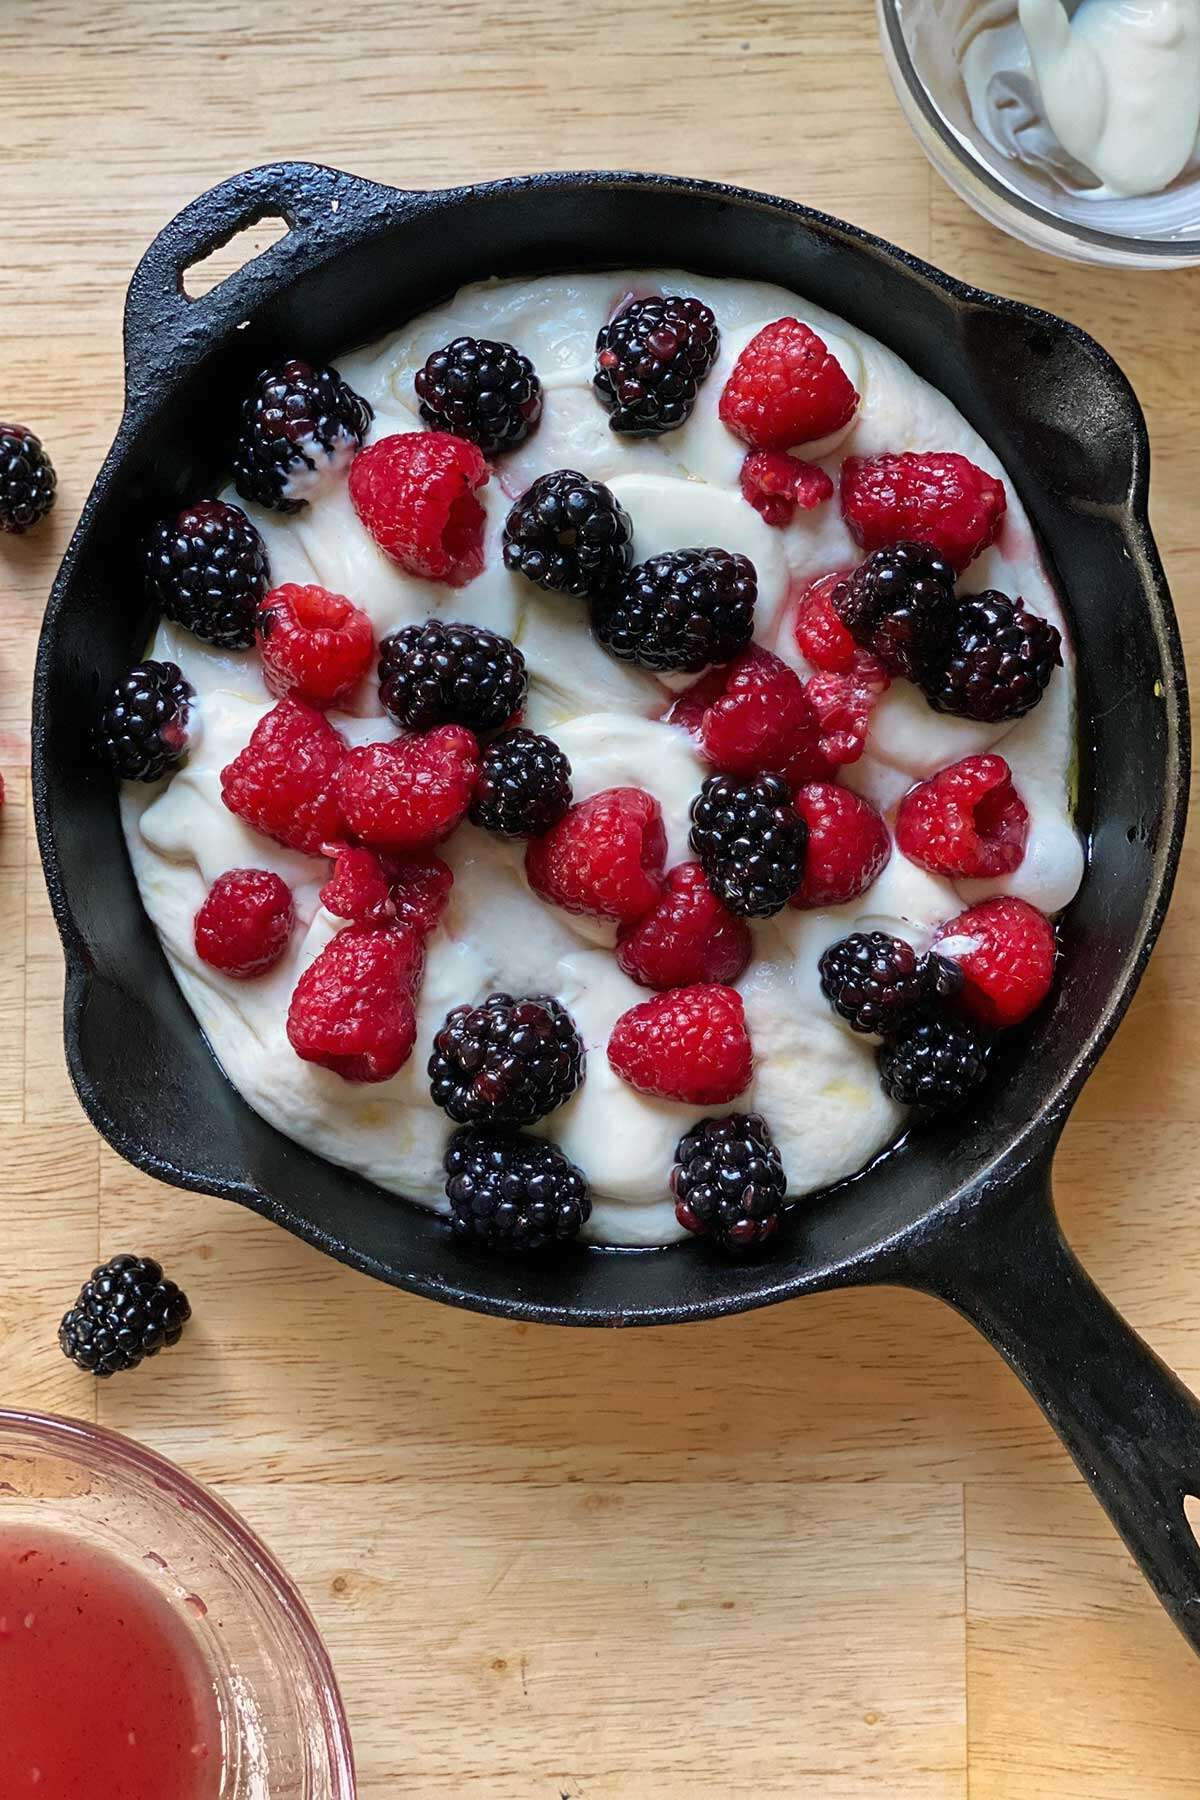 Pizza dough in a cast iron pan topped with sweetened mascarpone and fresh berries